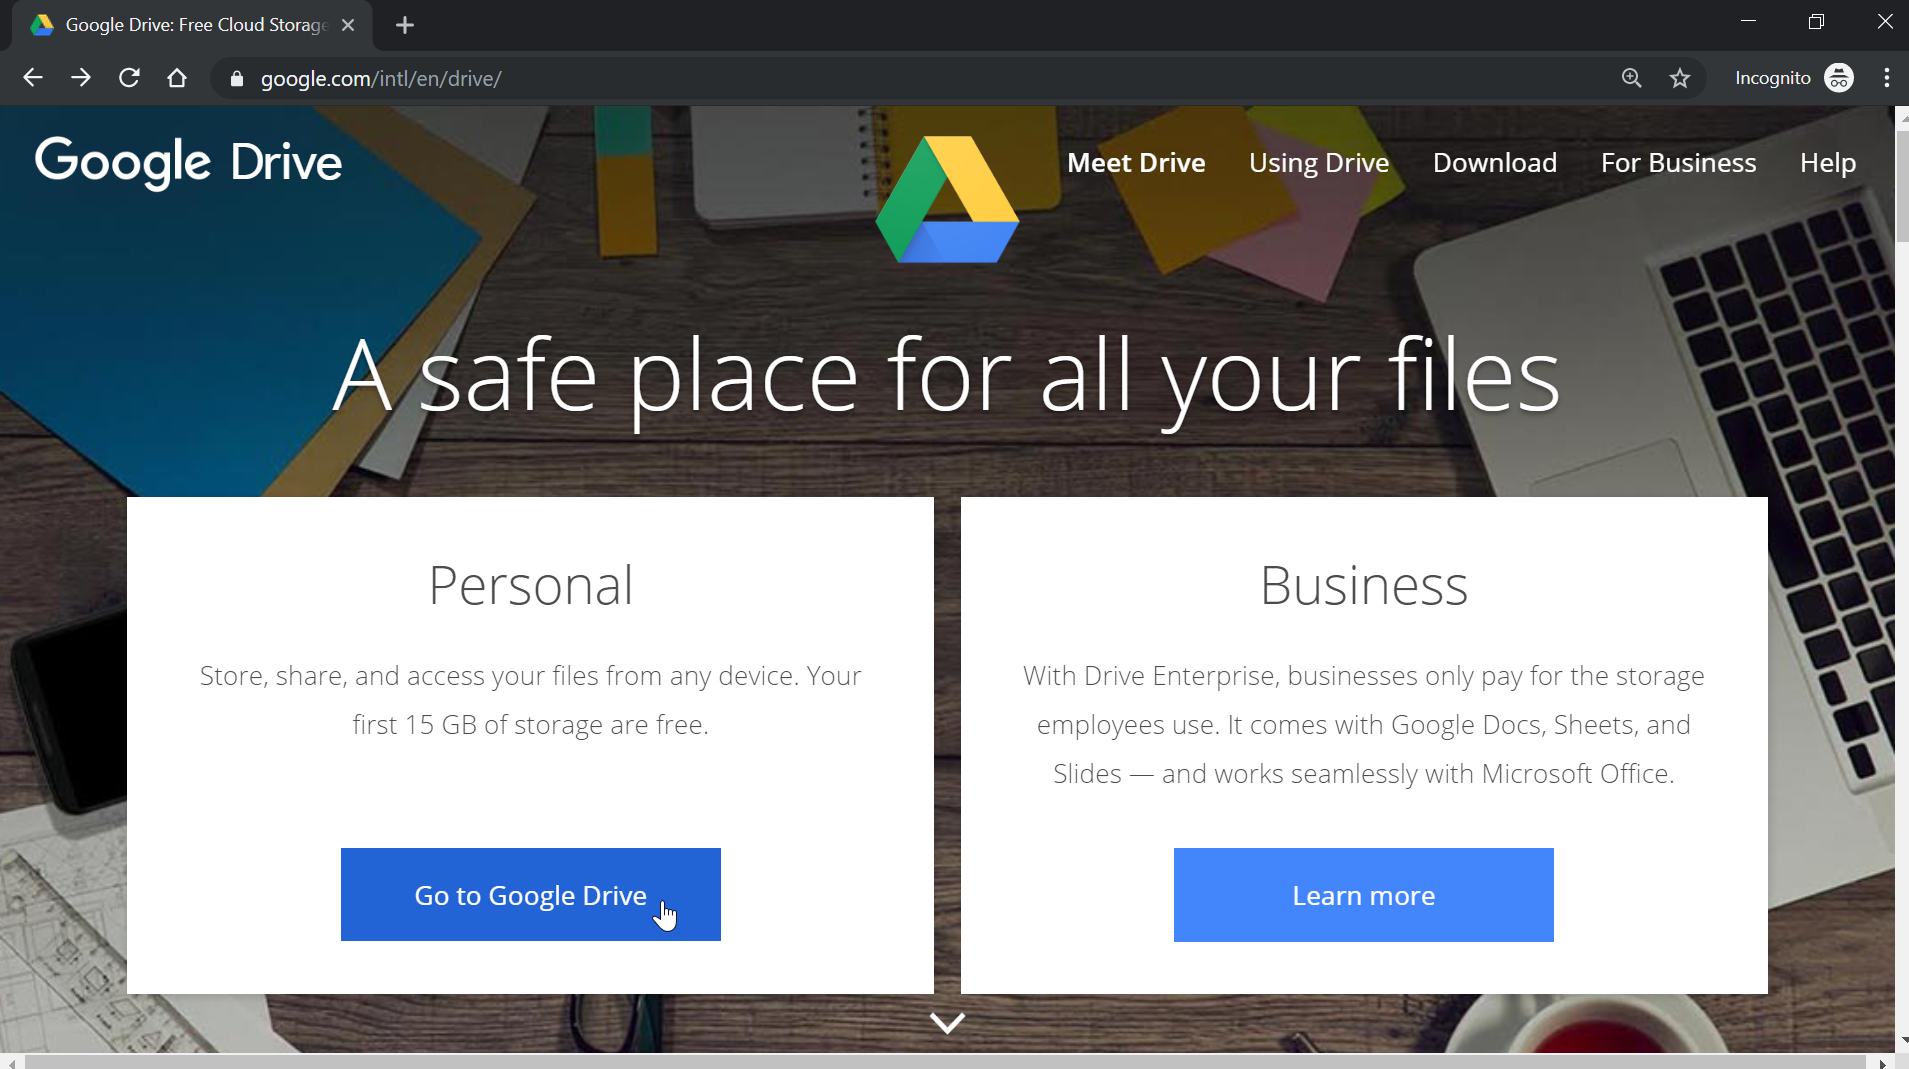 How to create a Google Drive account and get 15GB Google Drive free storage ?